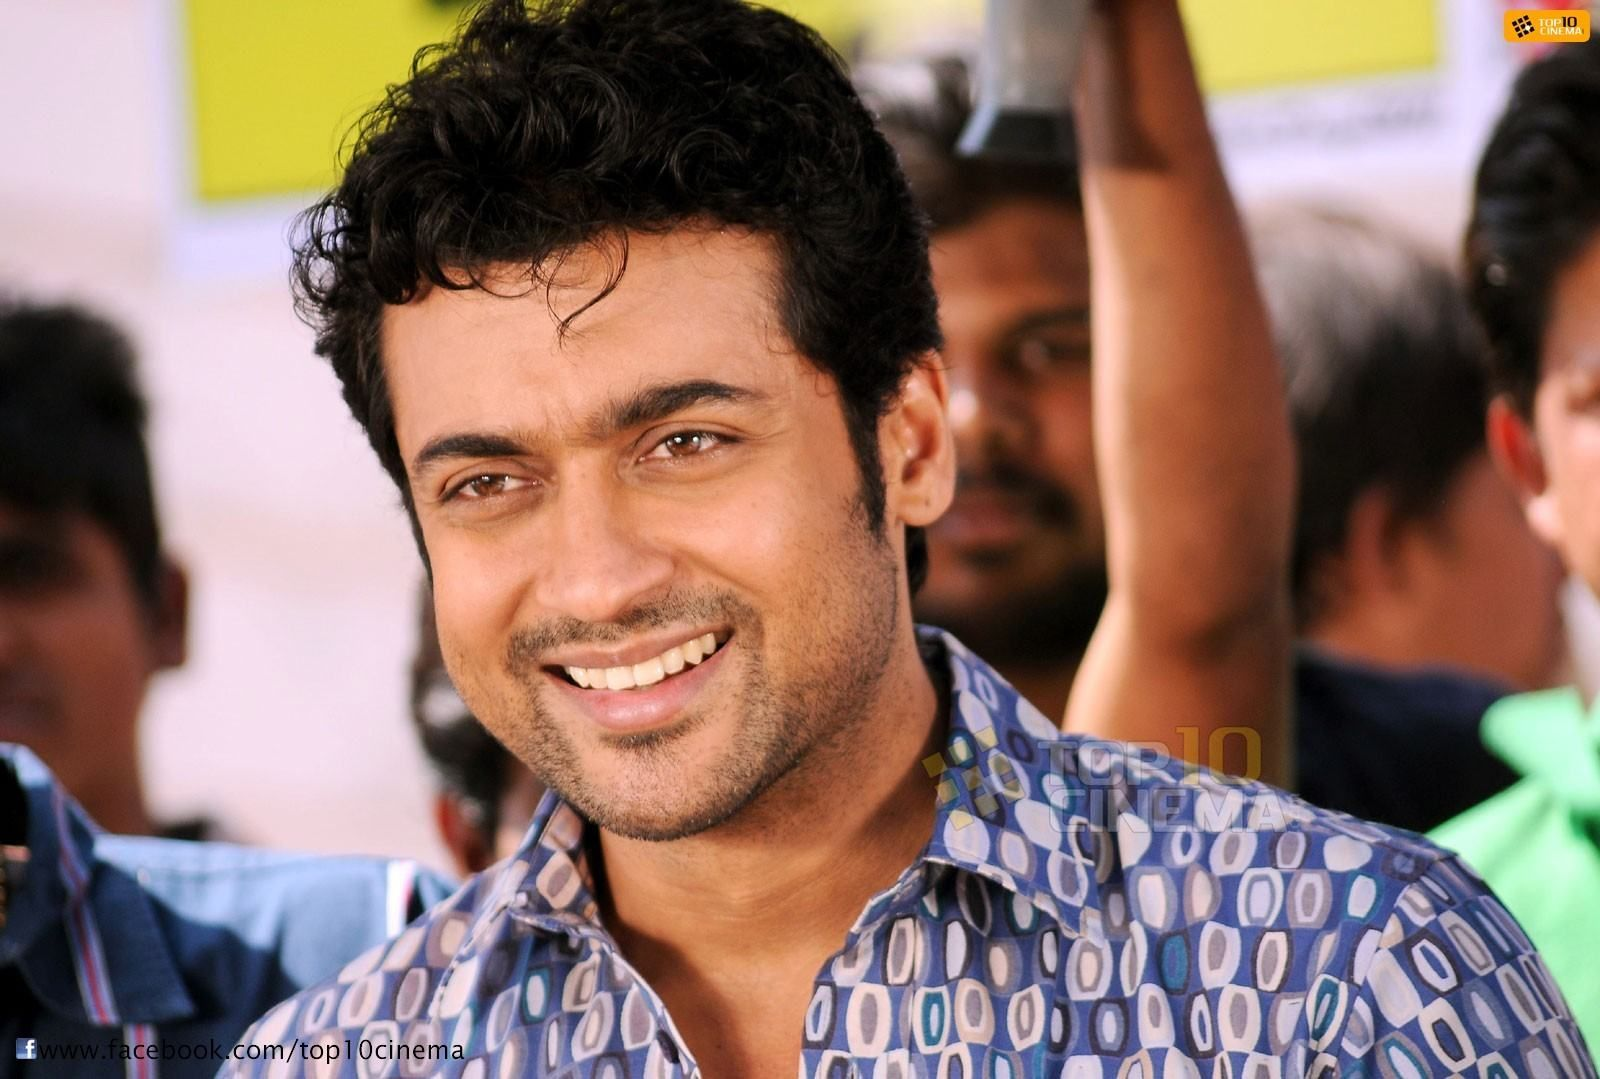 Surya hd wallpapers 2016 wallpaper cave wallpapers pinterest surya hd wallpapers 2016 wallpaper cave altavistaventures Images